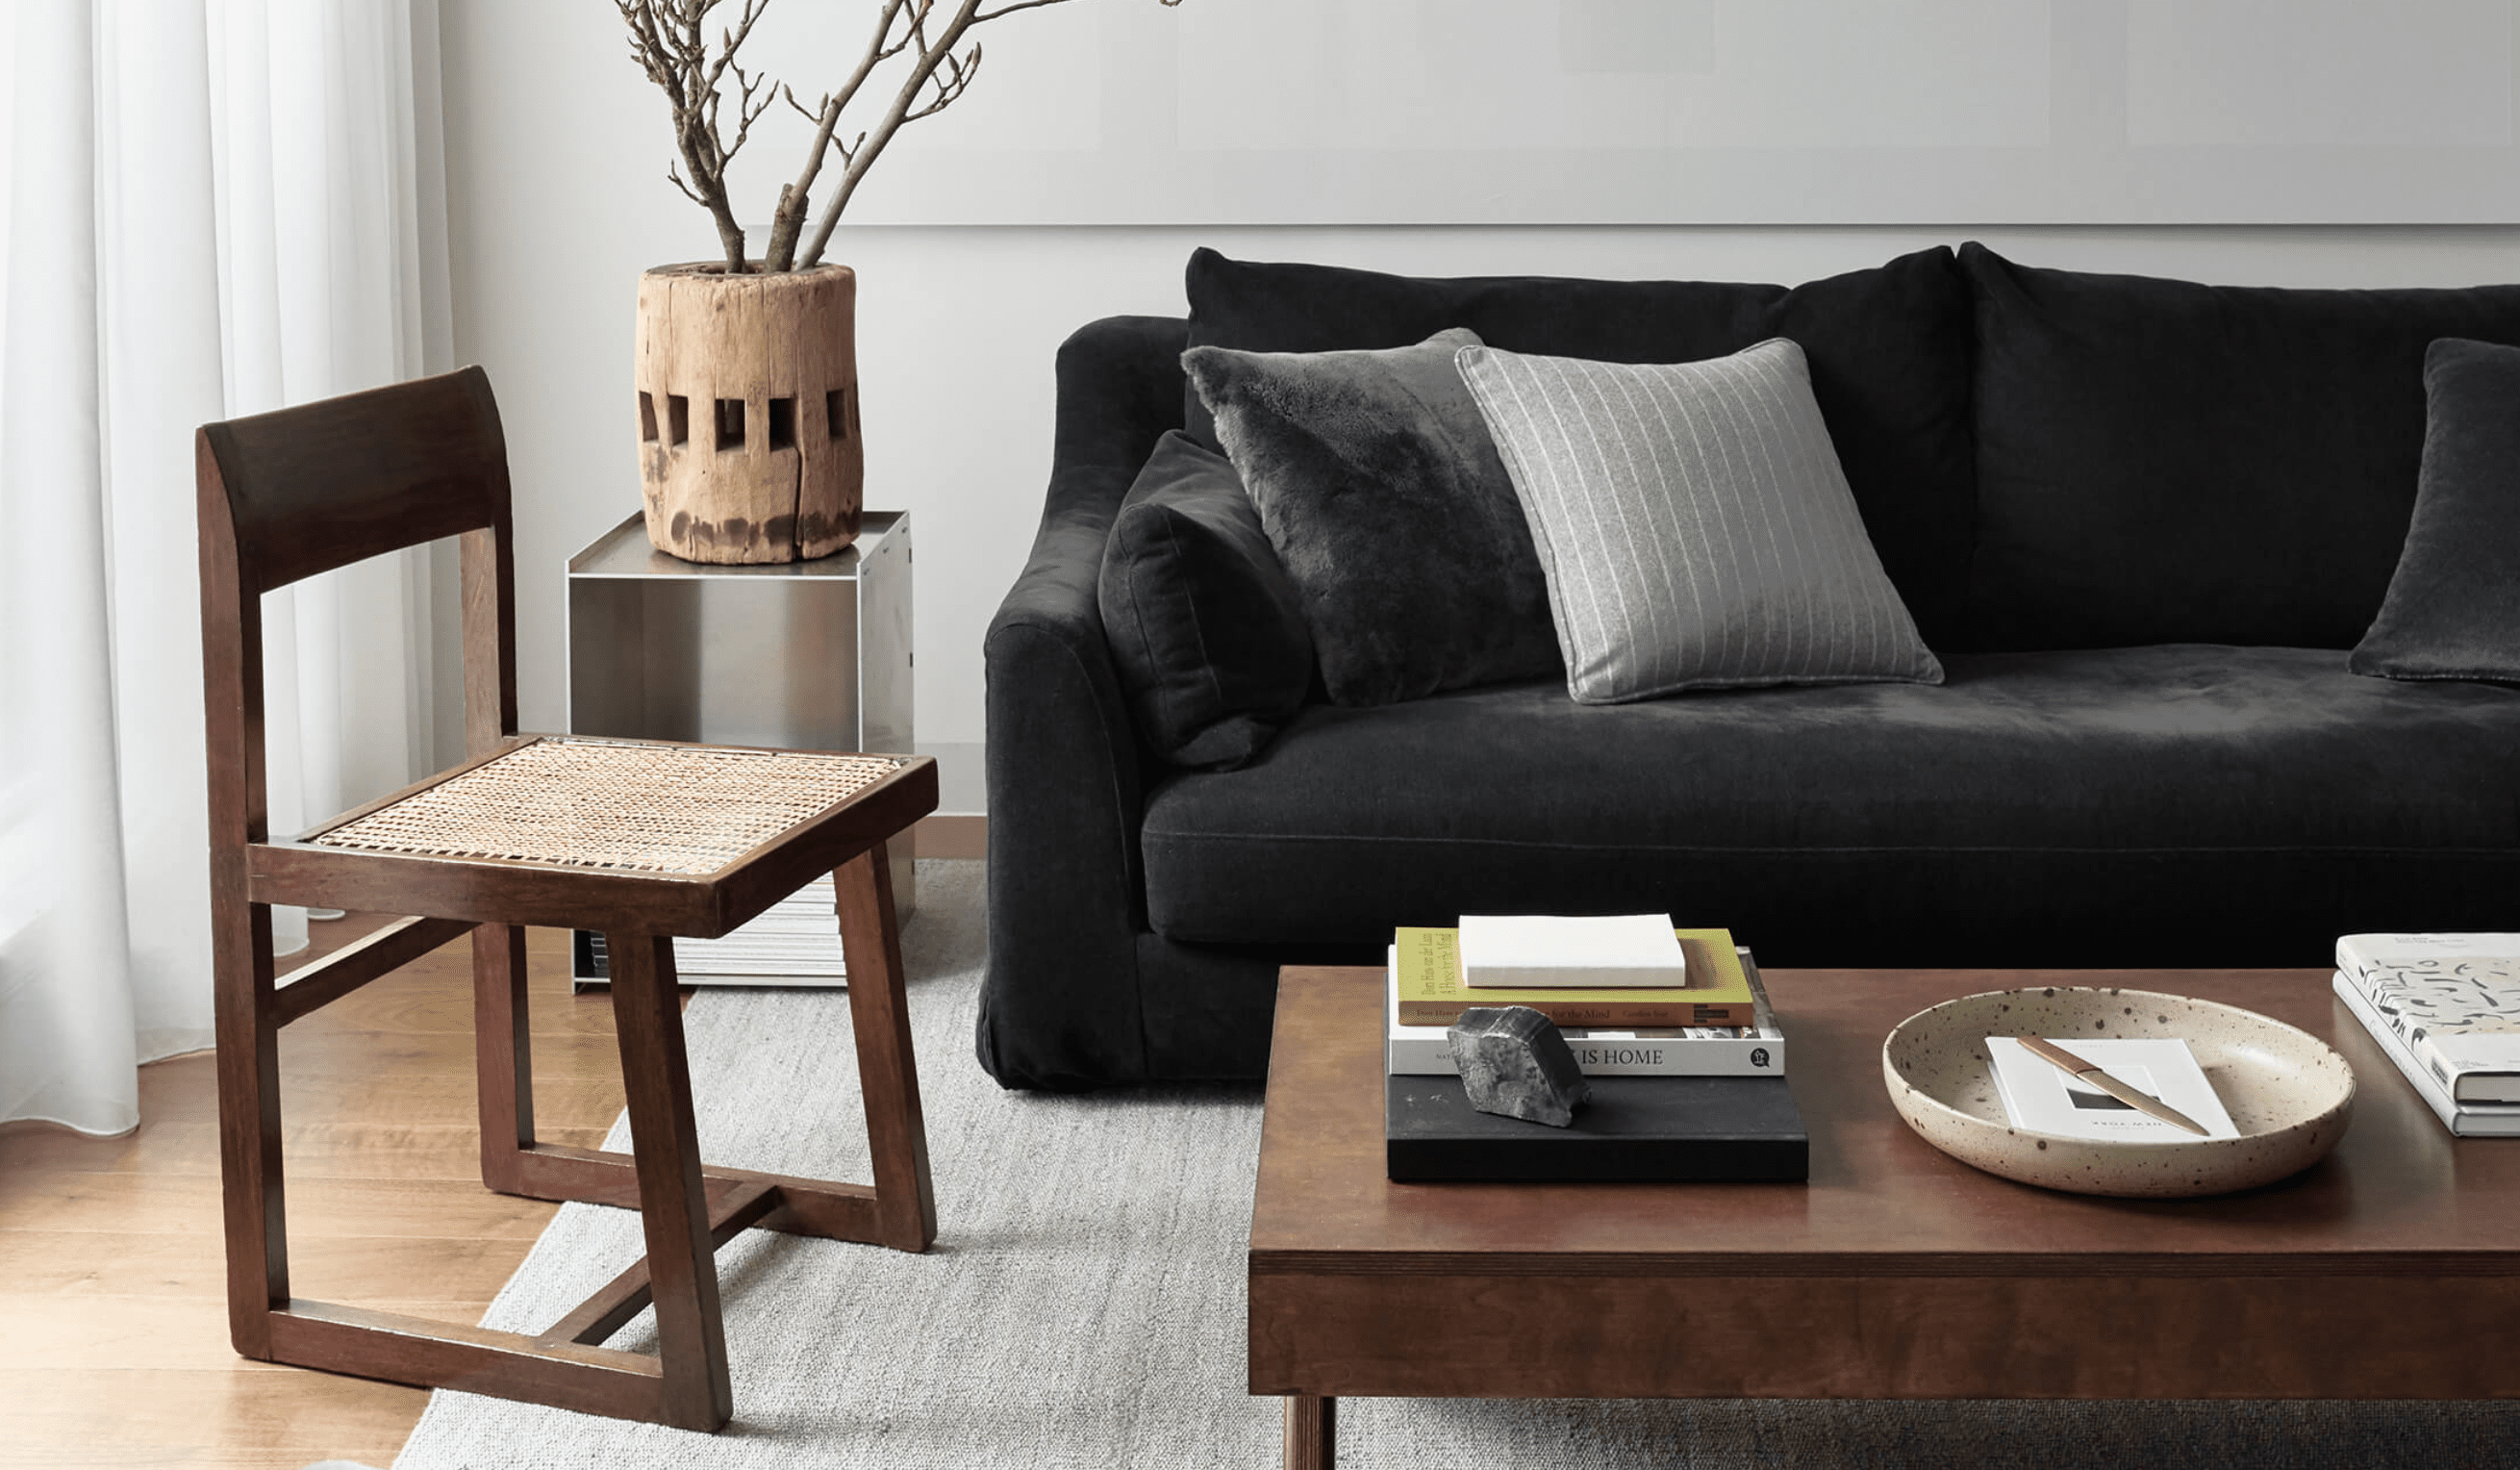 A living room filled with well-made midcentury modern furniture